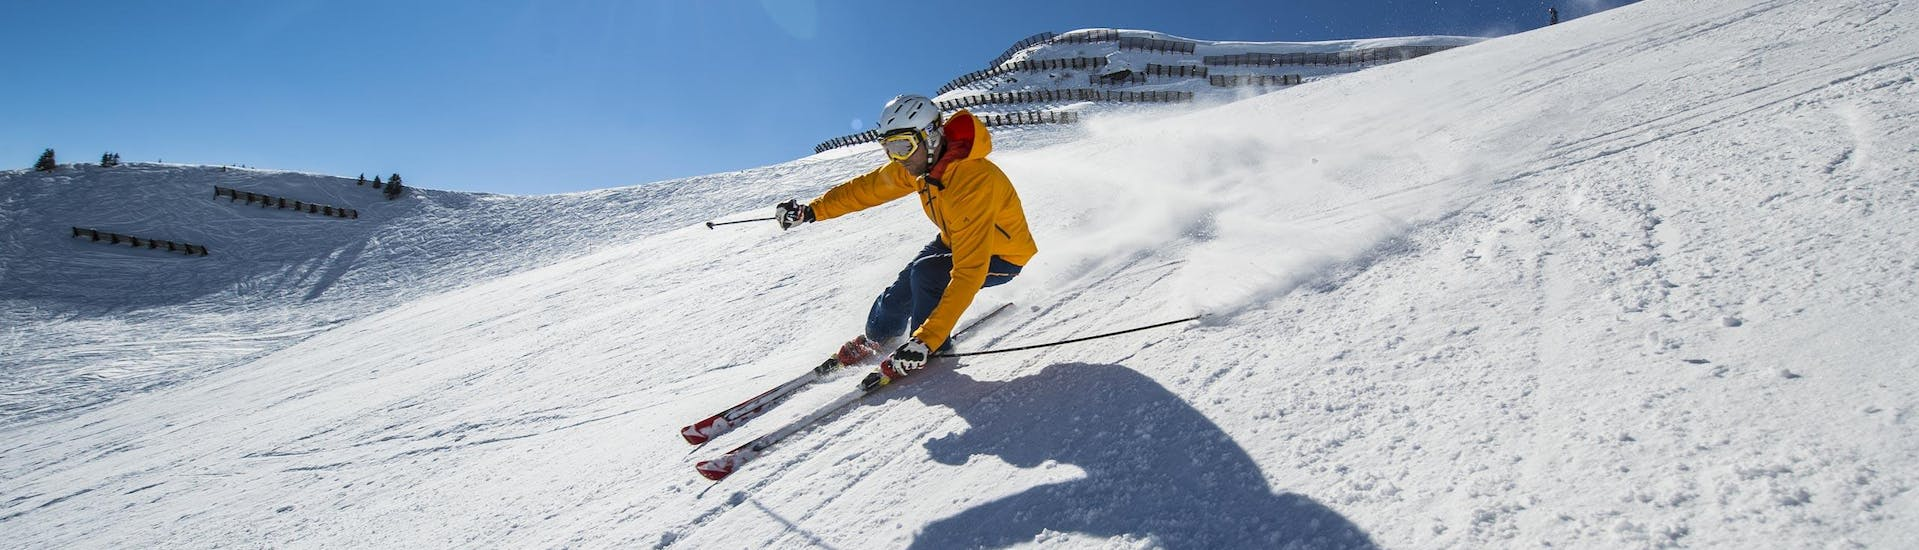 Private Ski Lessons for Adults of All Levels: A skier is skiing down a sunny ski slope while participating in an activity offered by Skischule Neustift Olympia.